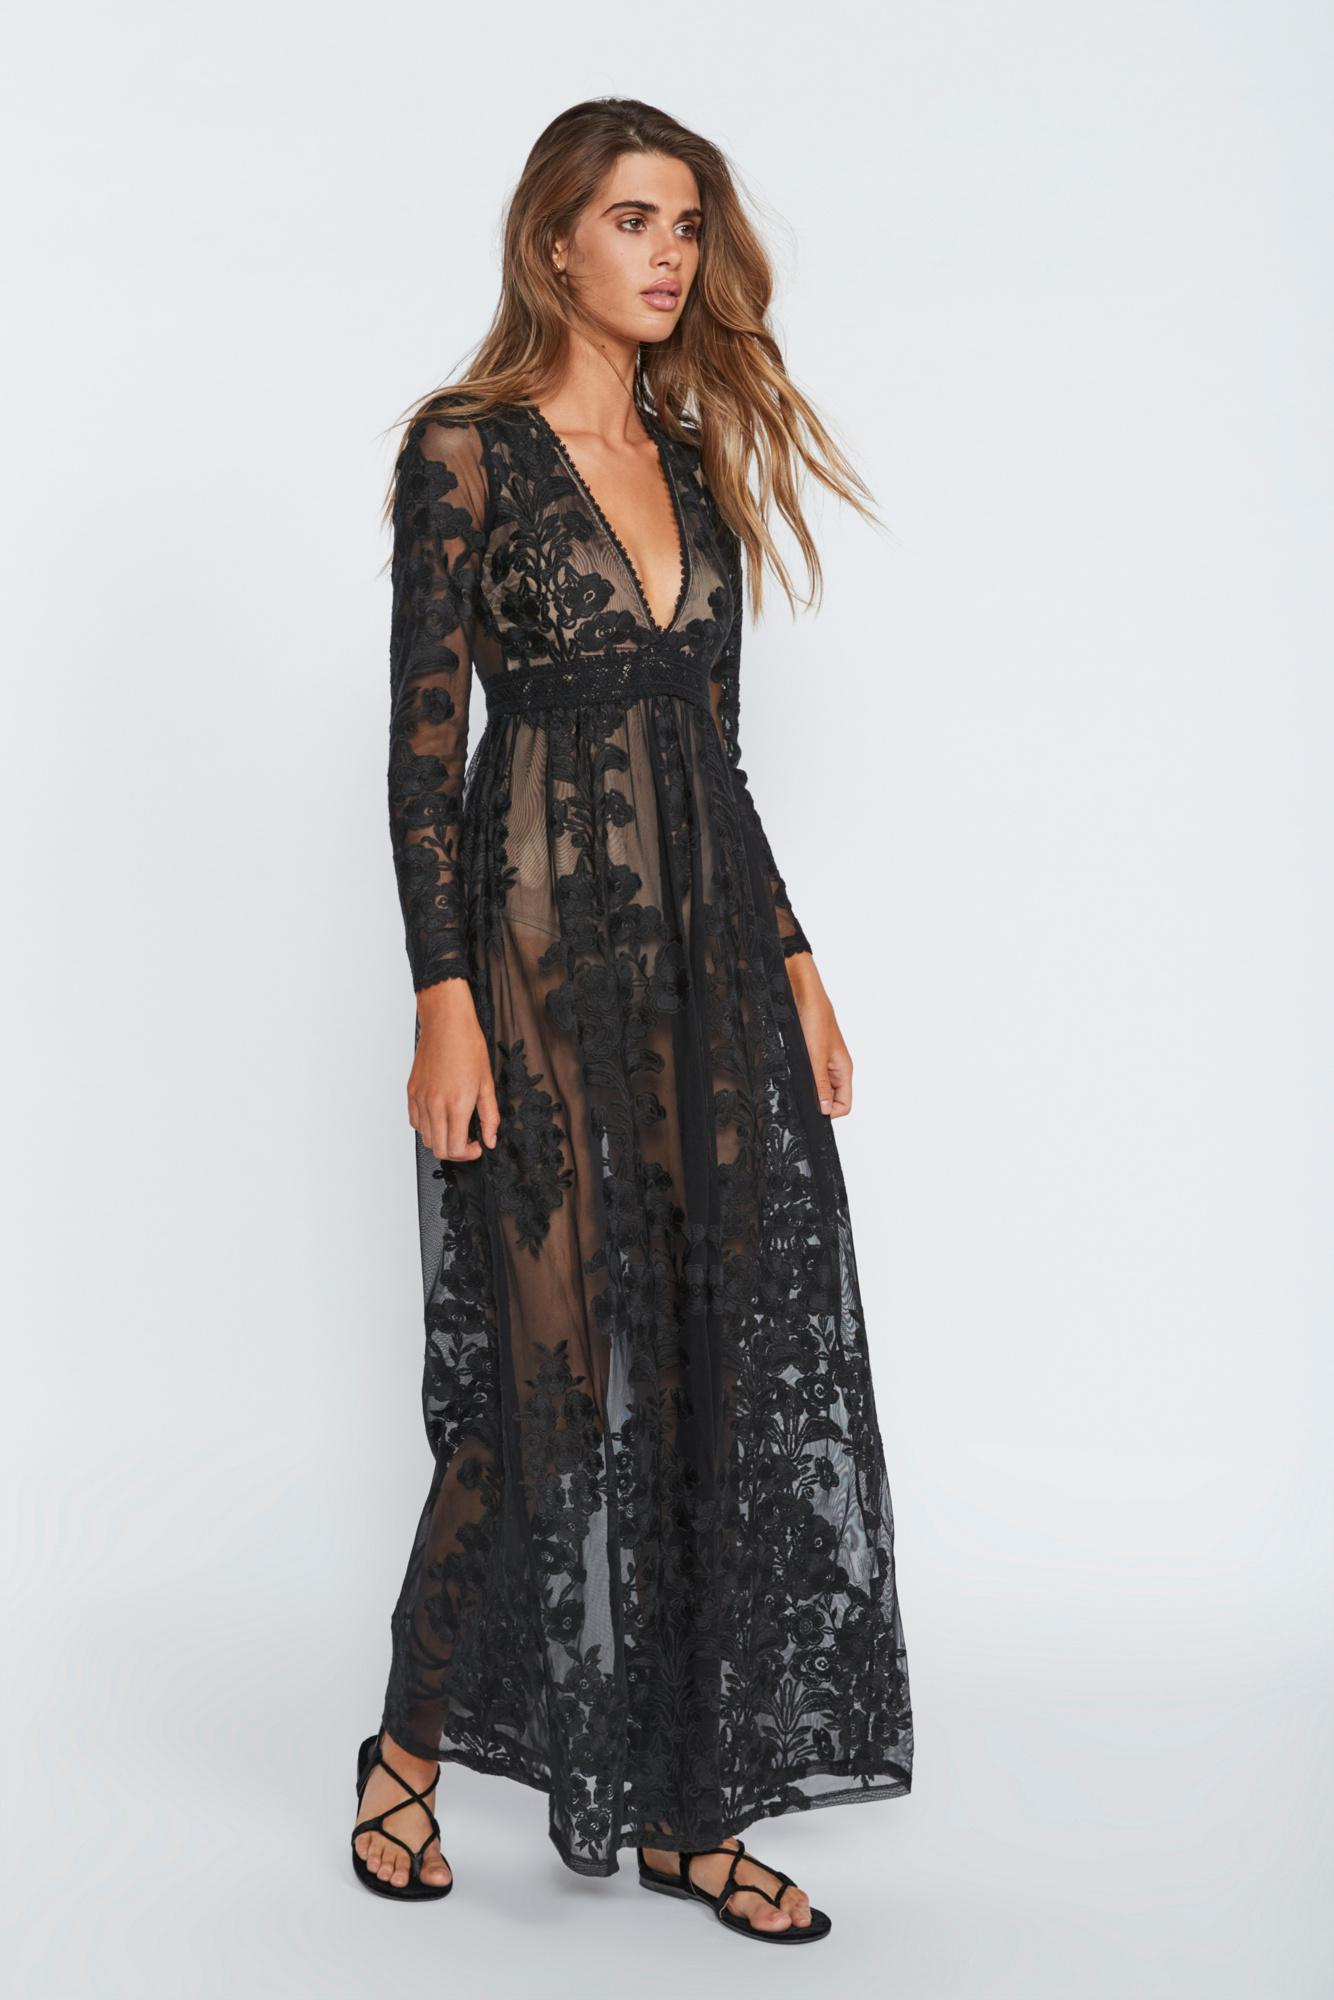 821e6c87679 Free People - Black Temecula Maxi Dress By For Love   Lemons - Lyst. View  fullscreen